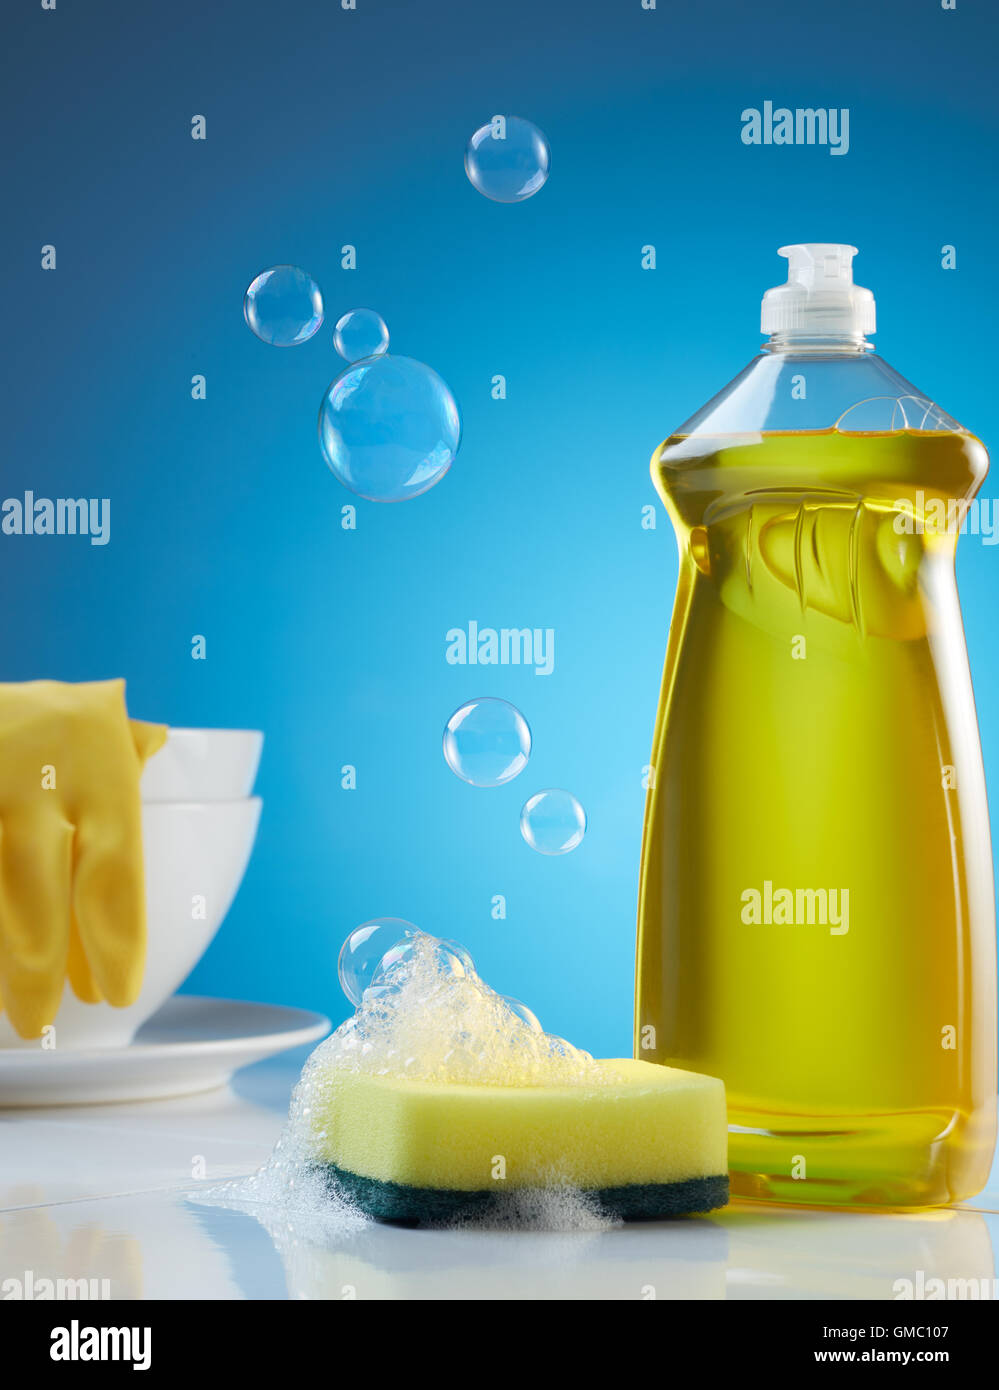 dishwashing products with bubbles, soap and crockery - Stock Image